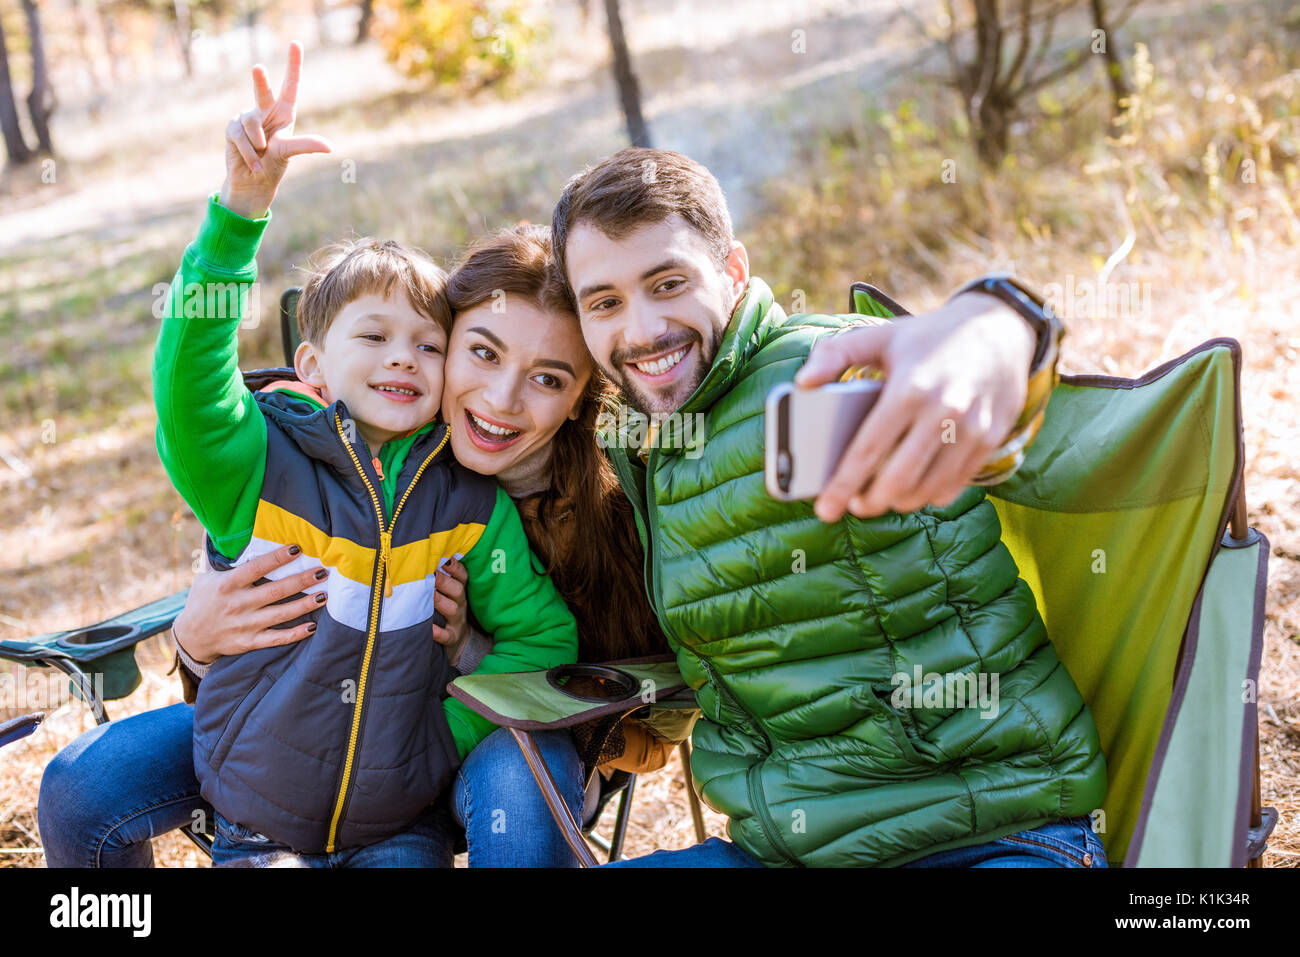 Happy smiling family at picnic having fun and taking selfie in autumn park - Stock Image